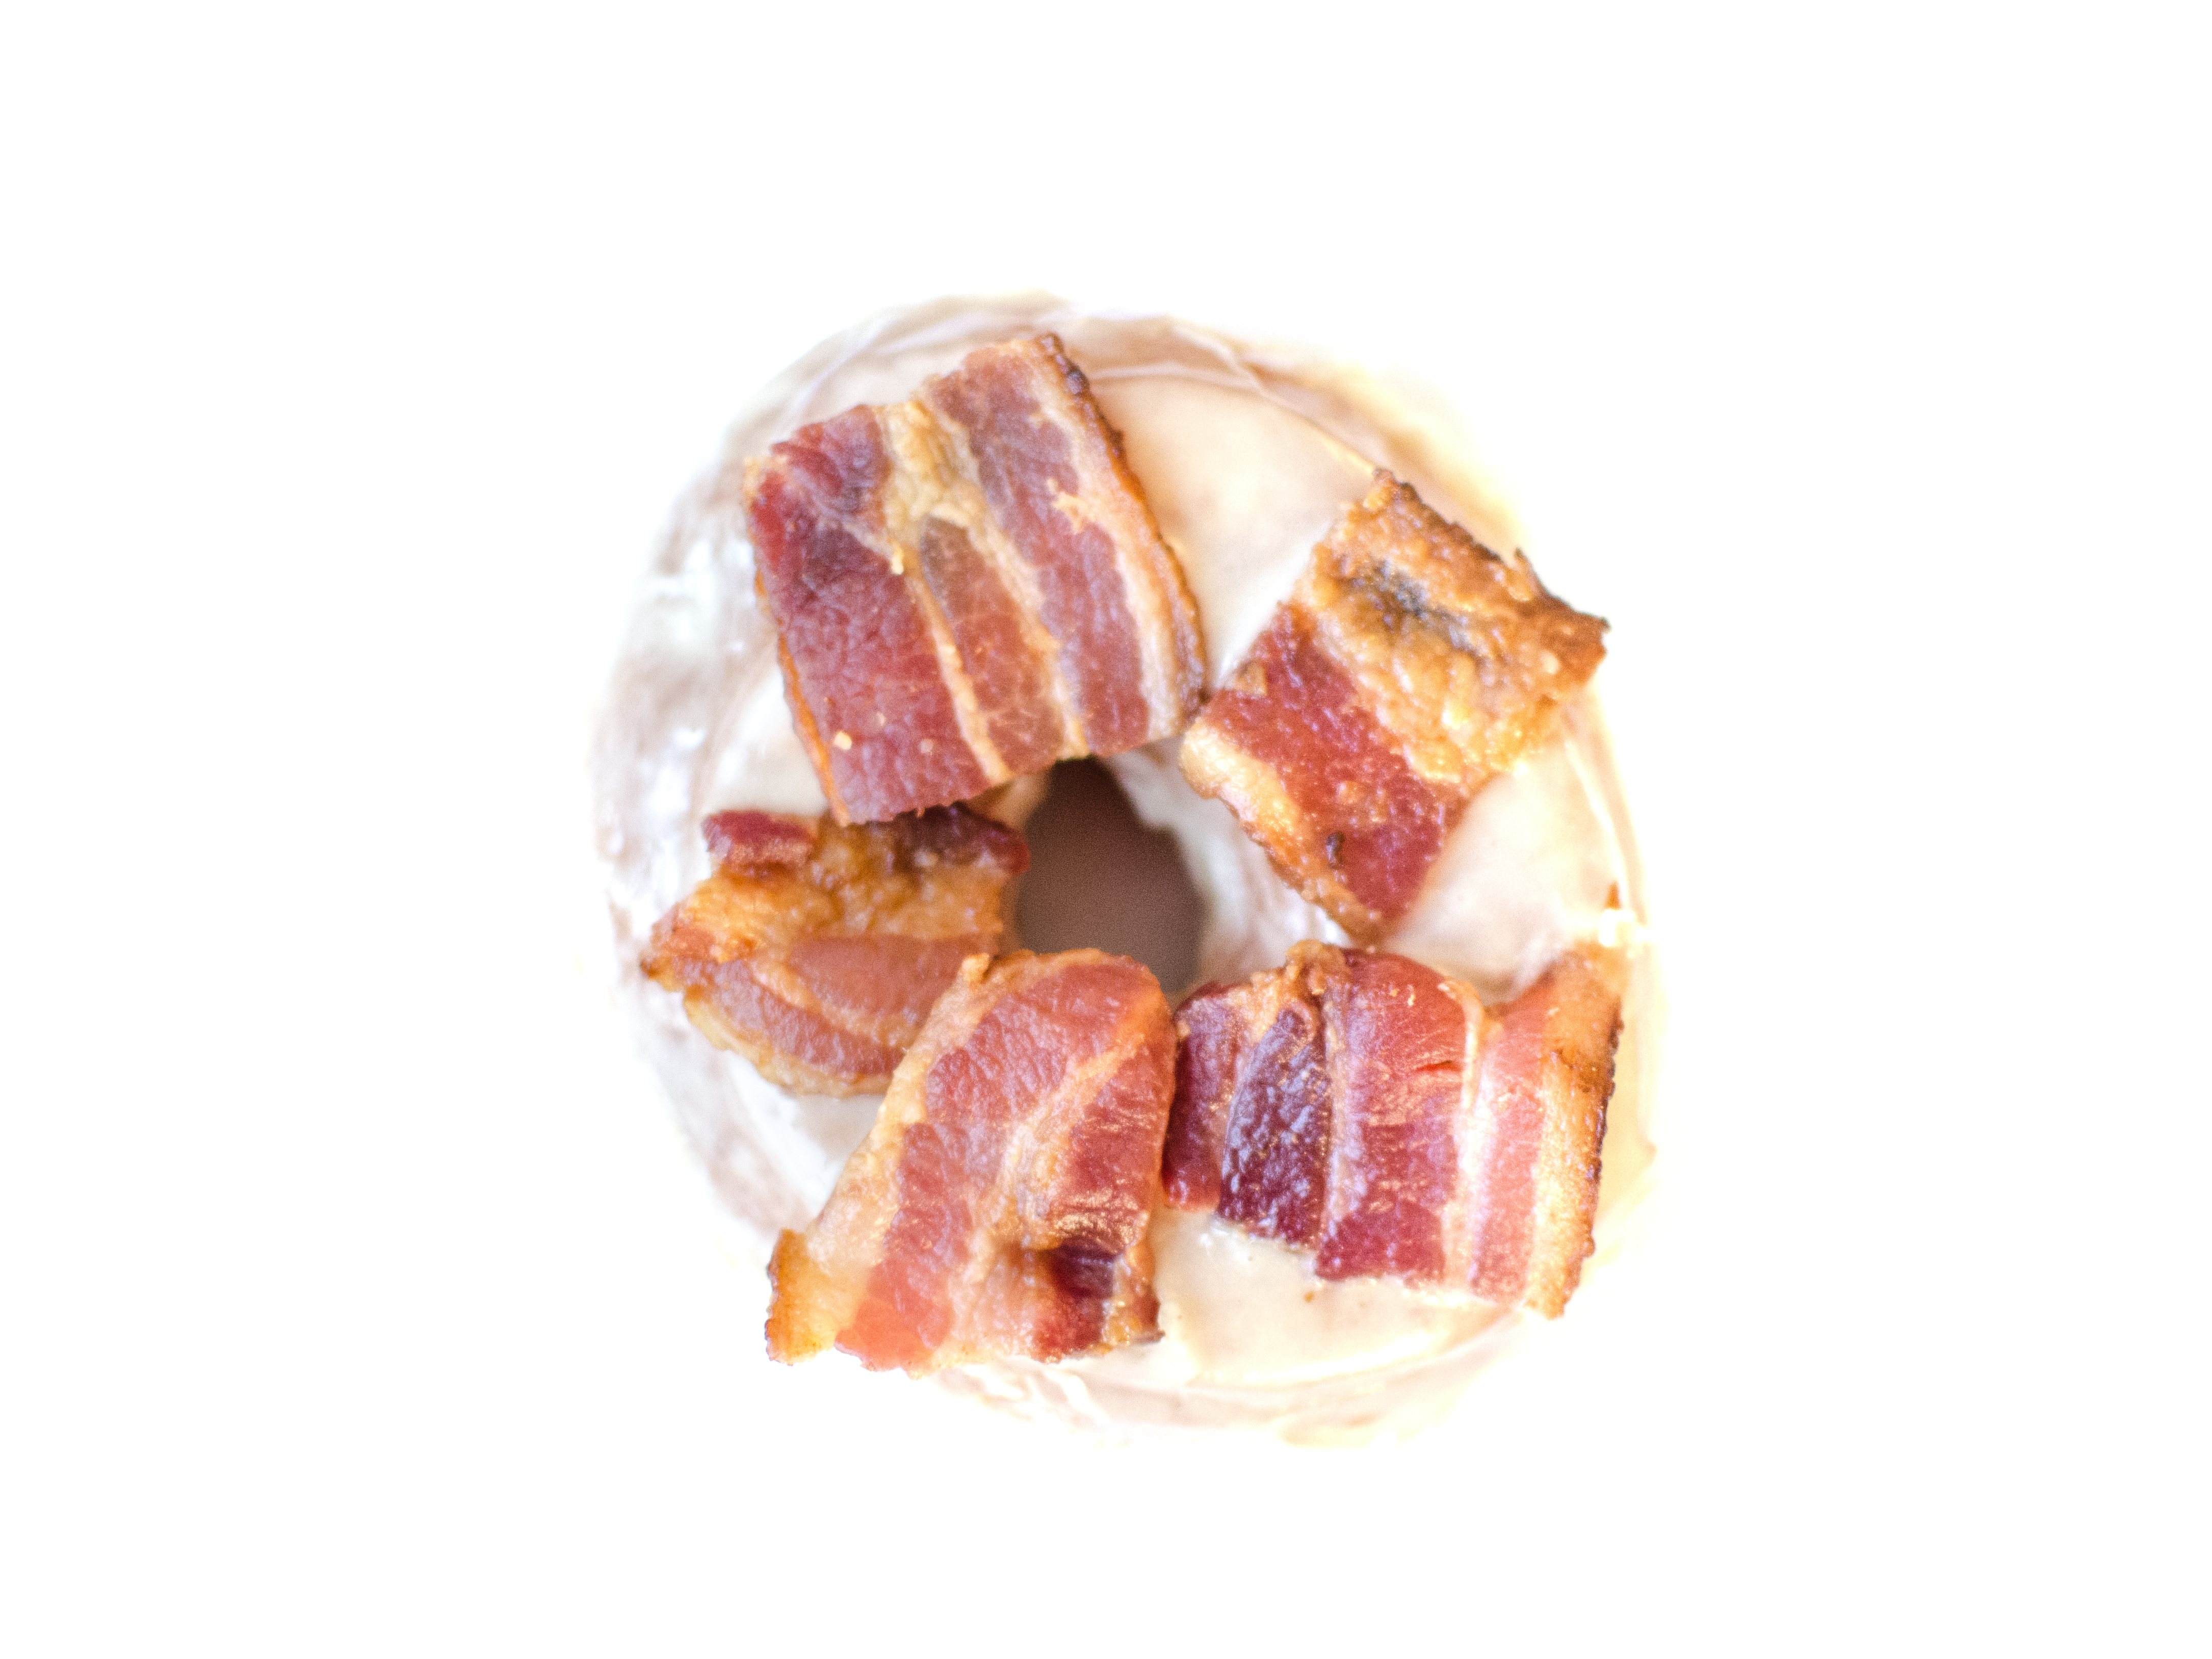 A maple bacon doughnut from Union Square Donuts